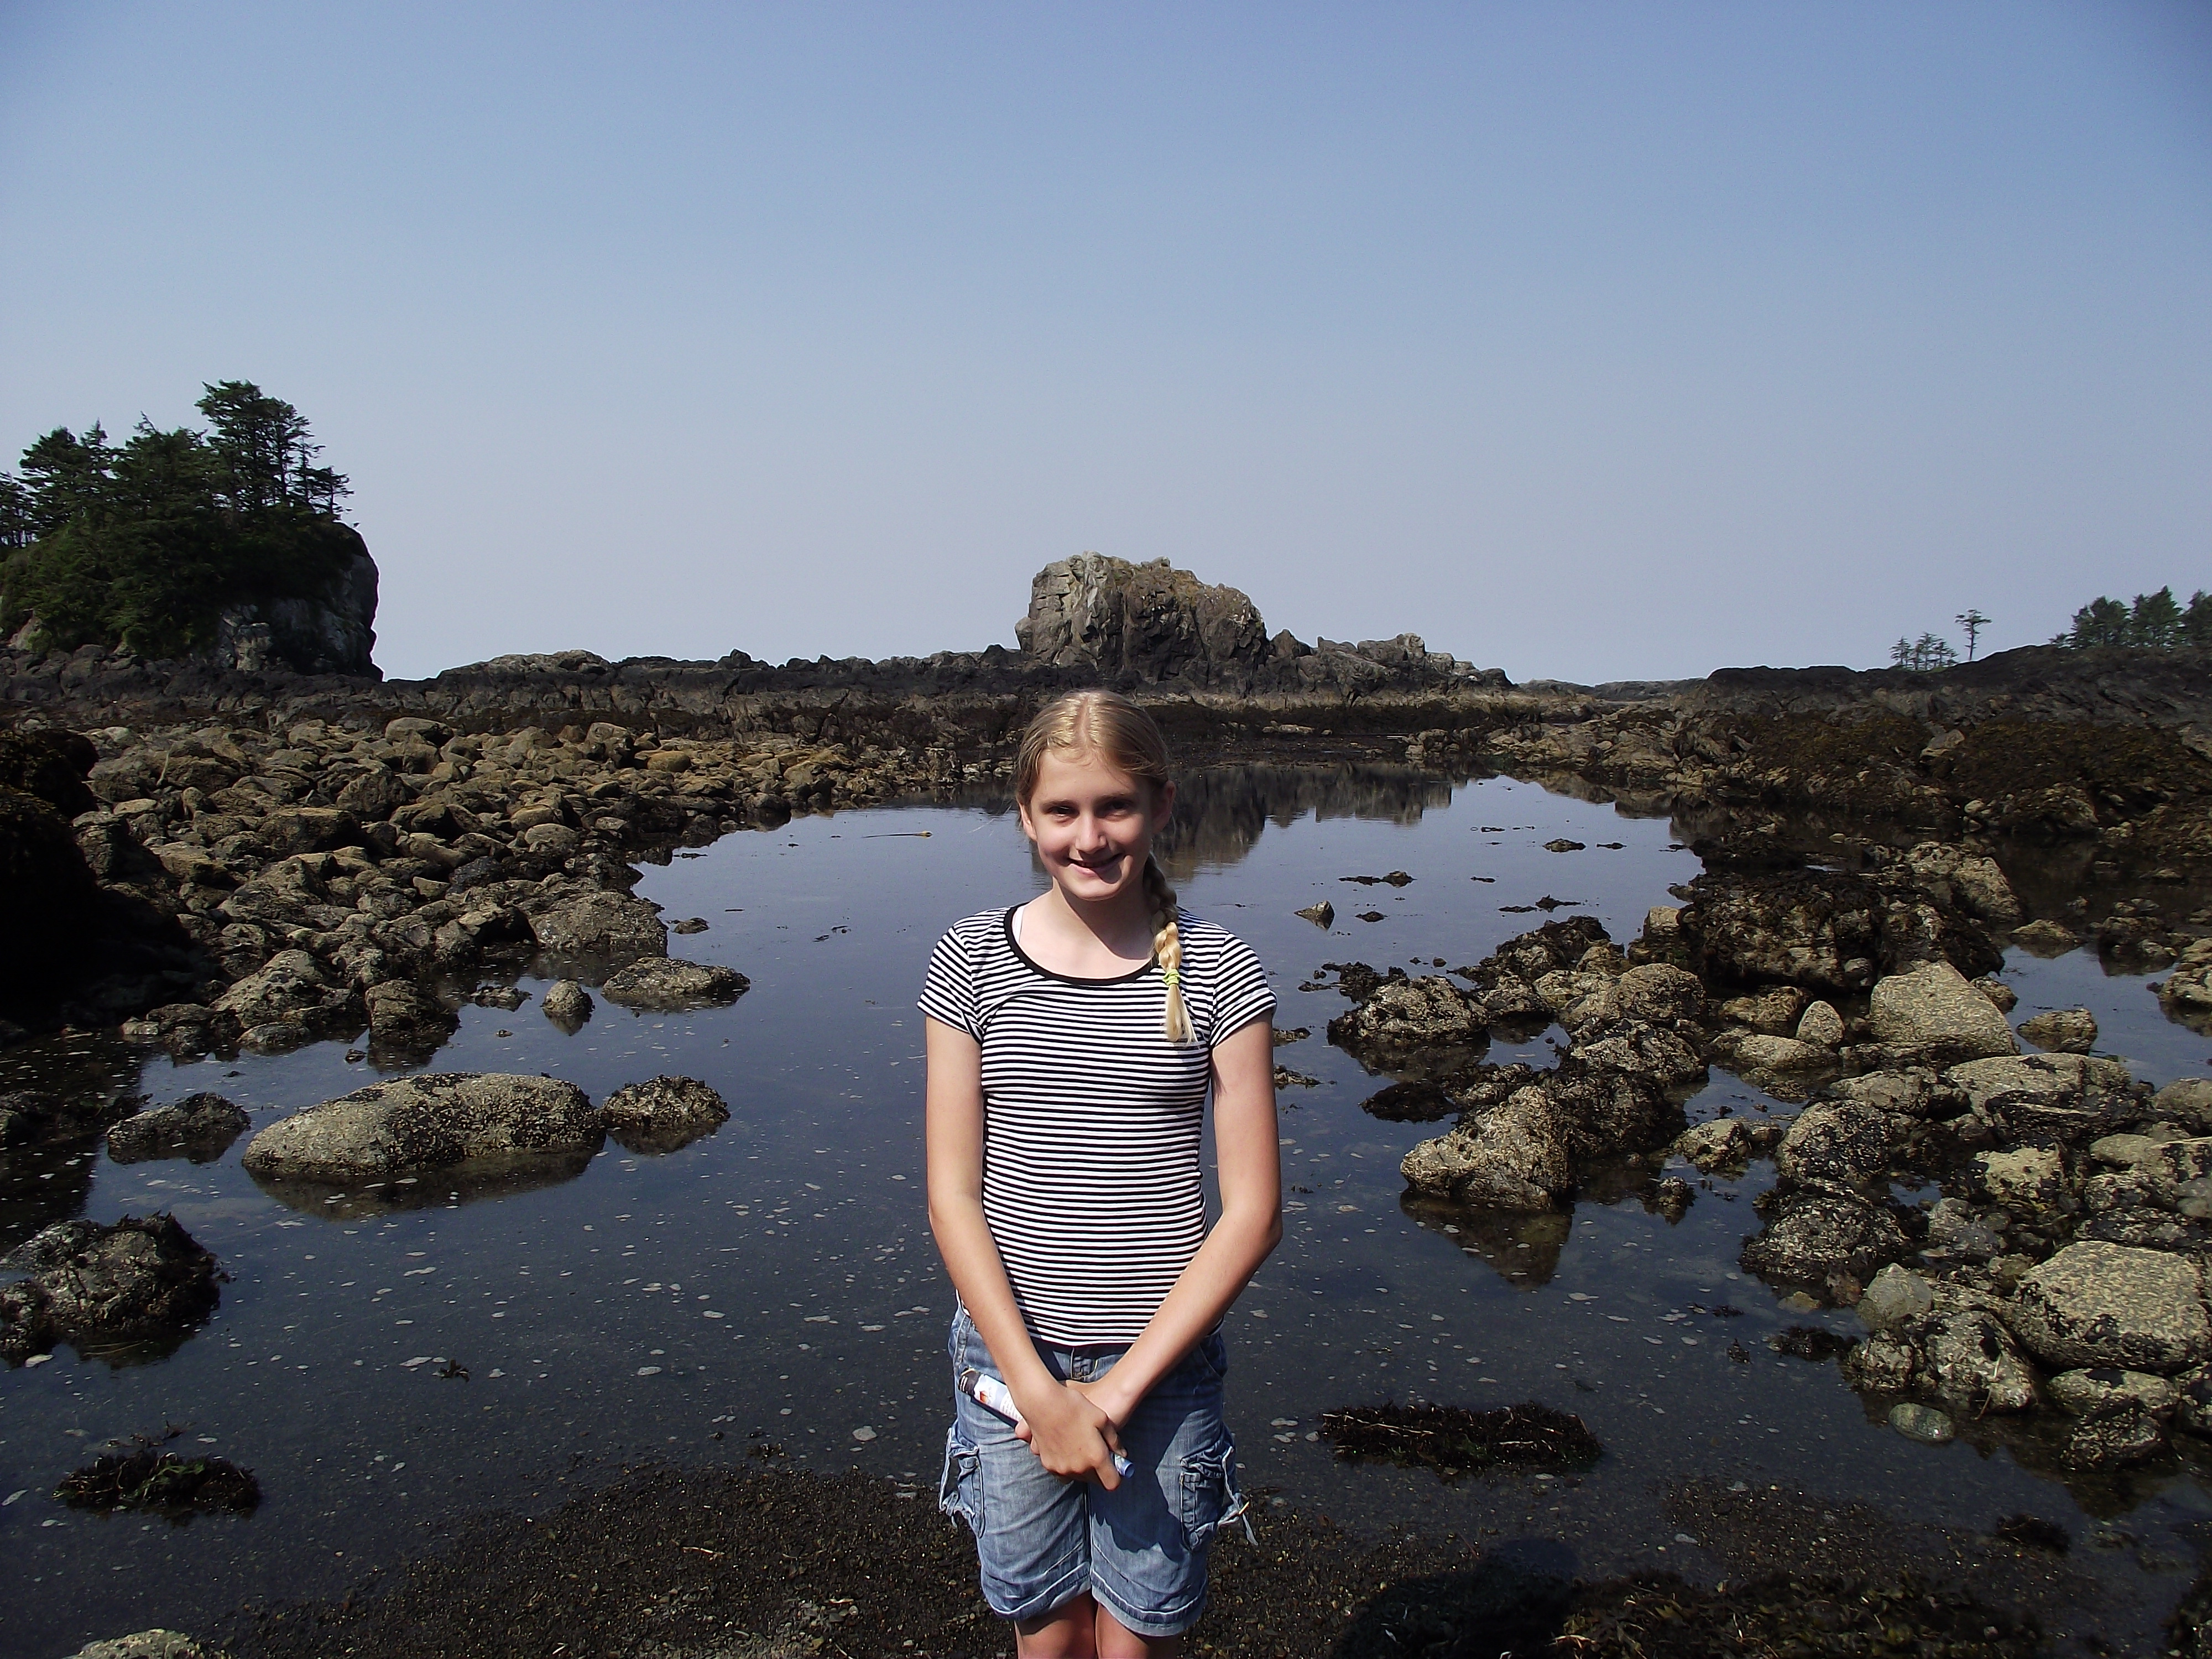 At low tide levels like this there is a huge expanse to explore more of the rich biodiversity of this region.